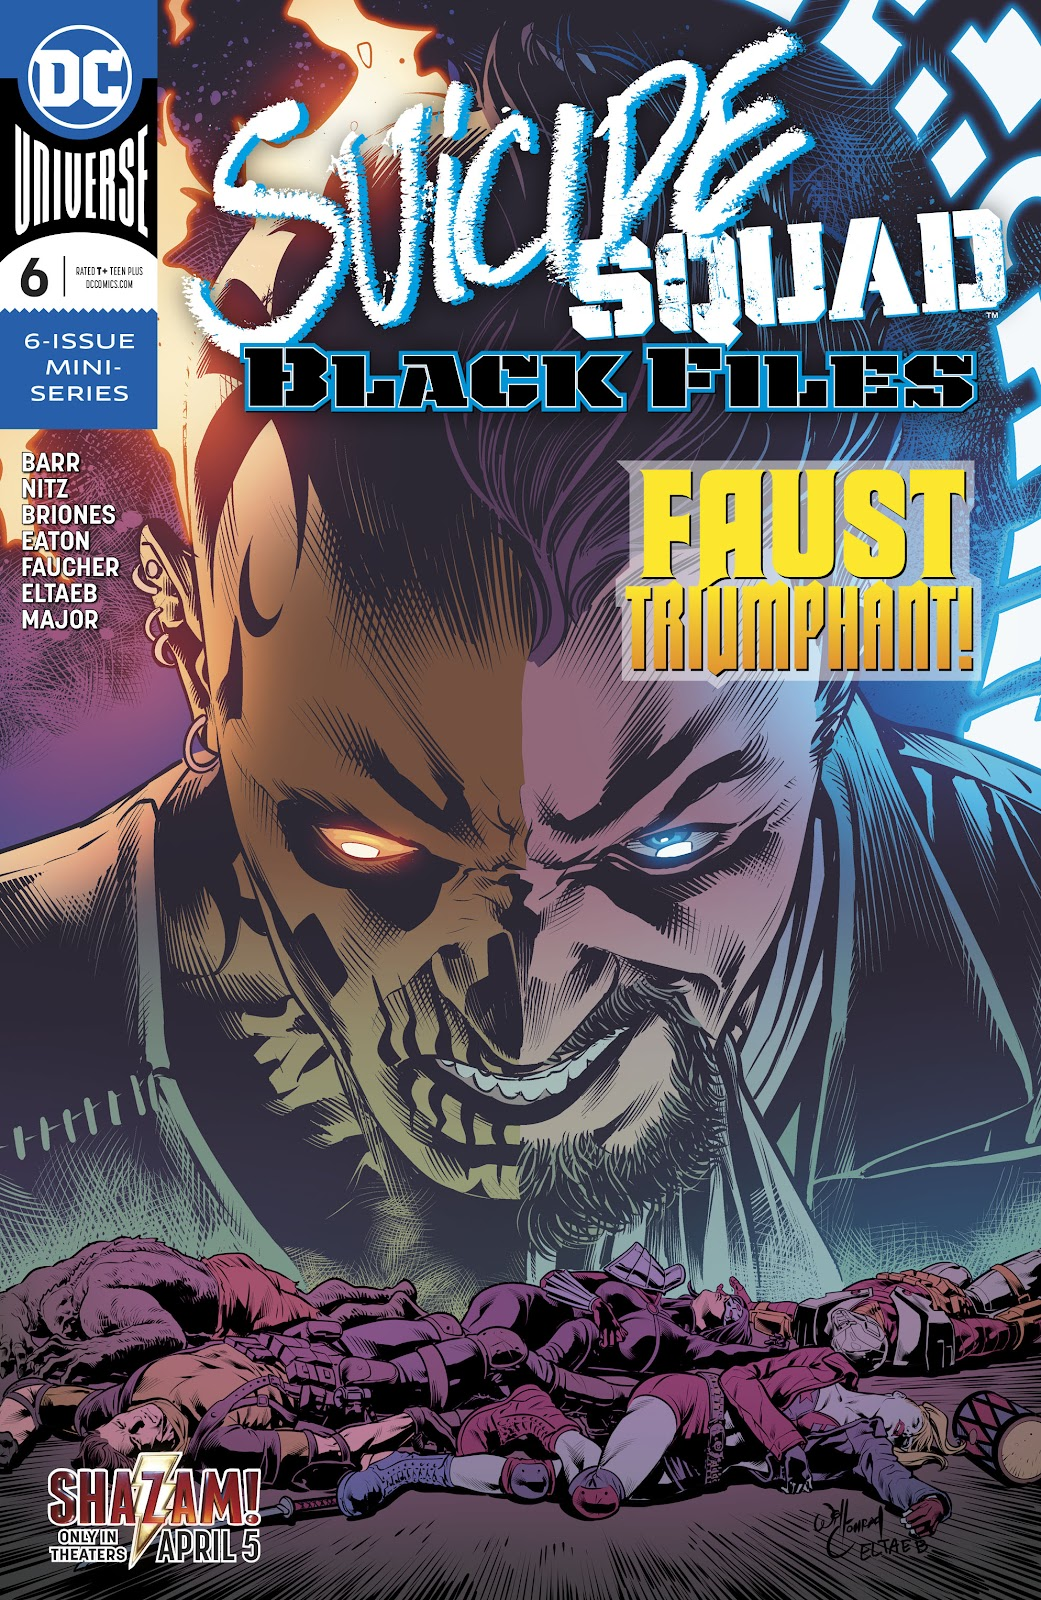 Read online Suicide Squad Black Files comic -  Issue #6 - 1